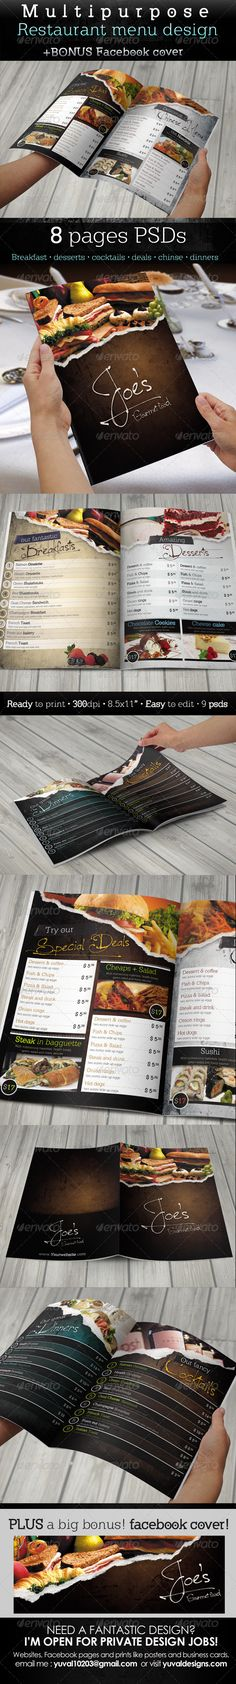 Buy Multipurpose Restaurant Menu Template by YuvalMalichi on GraphicRiver. THIS is a great creative menu for your restaurant. Food Menu Template, Restaurant Menu Template, Restaurant Menu Design, Restaurant Marketing, Logo Restaurant, Menu Templates, Corporate Design, Food Menu Design, Menu Printing